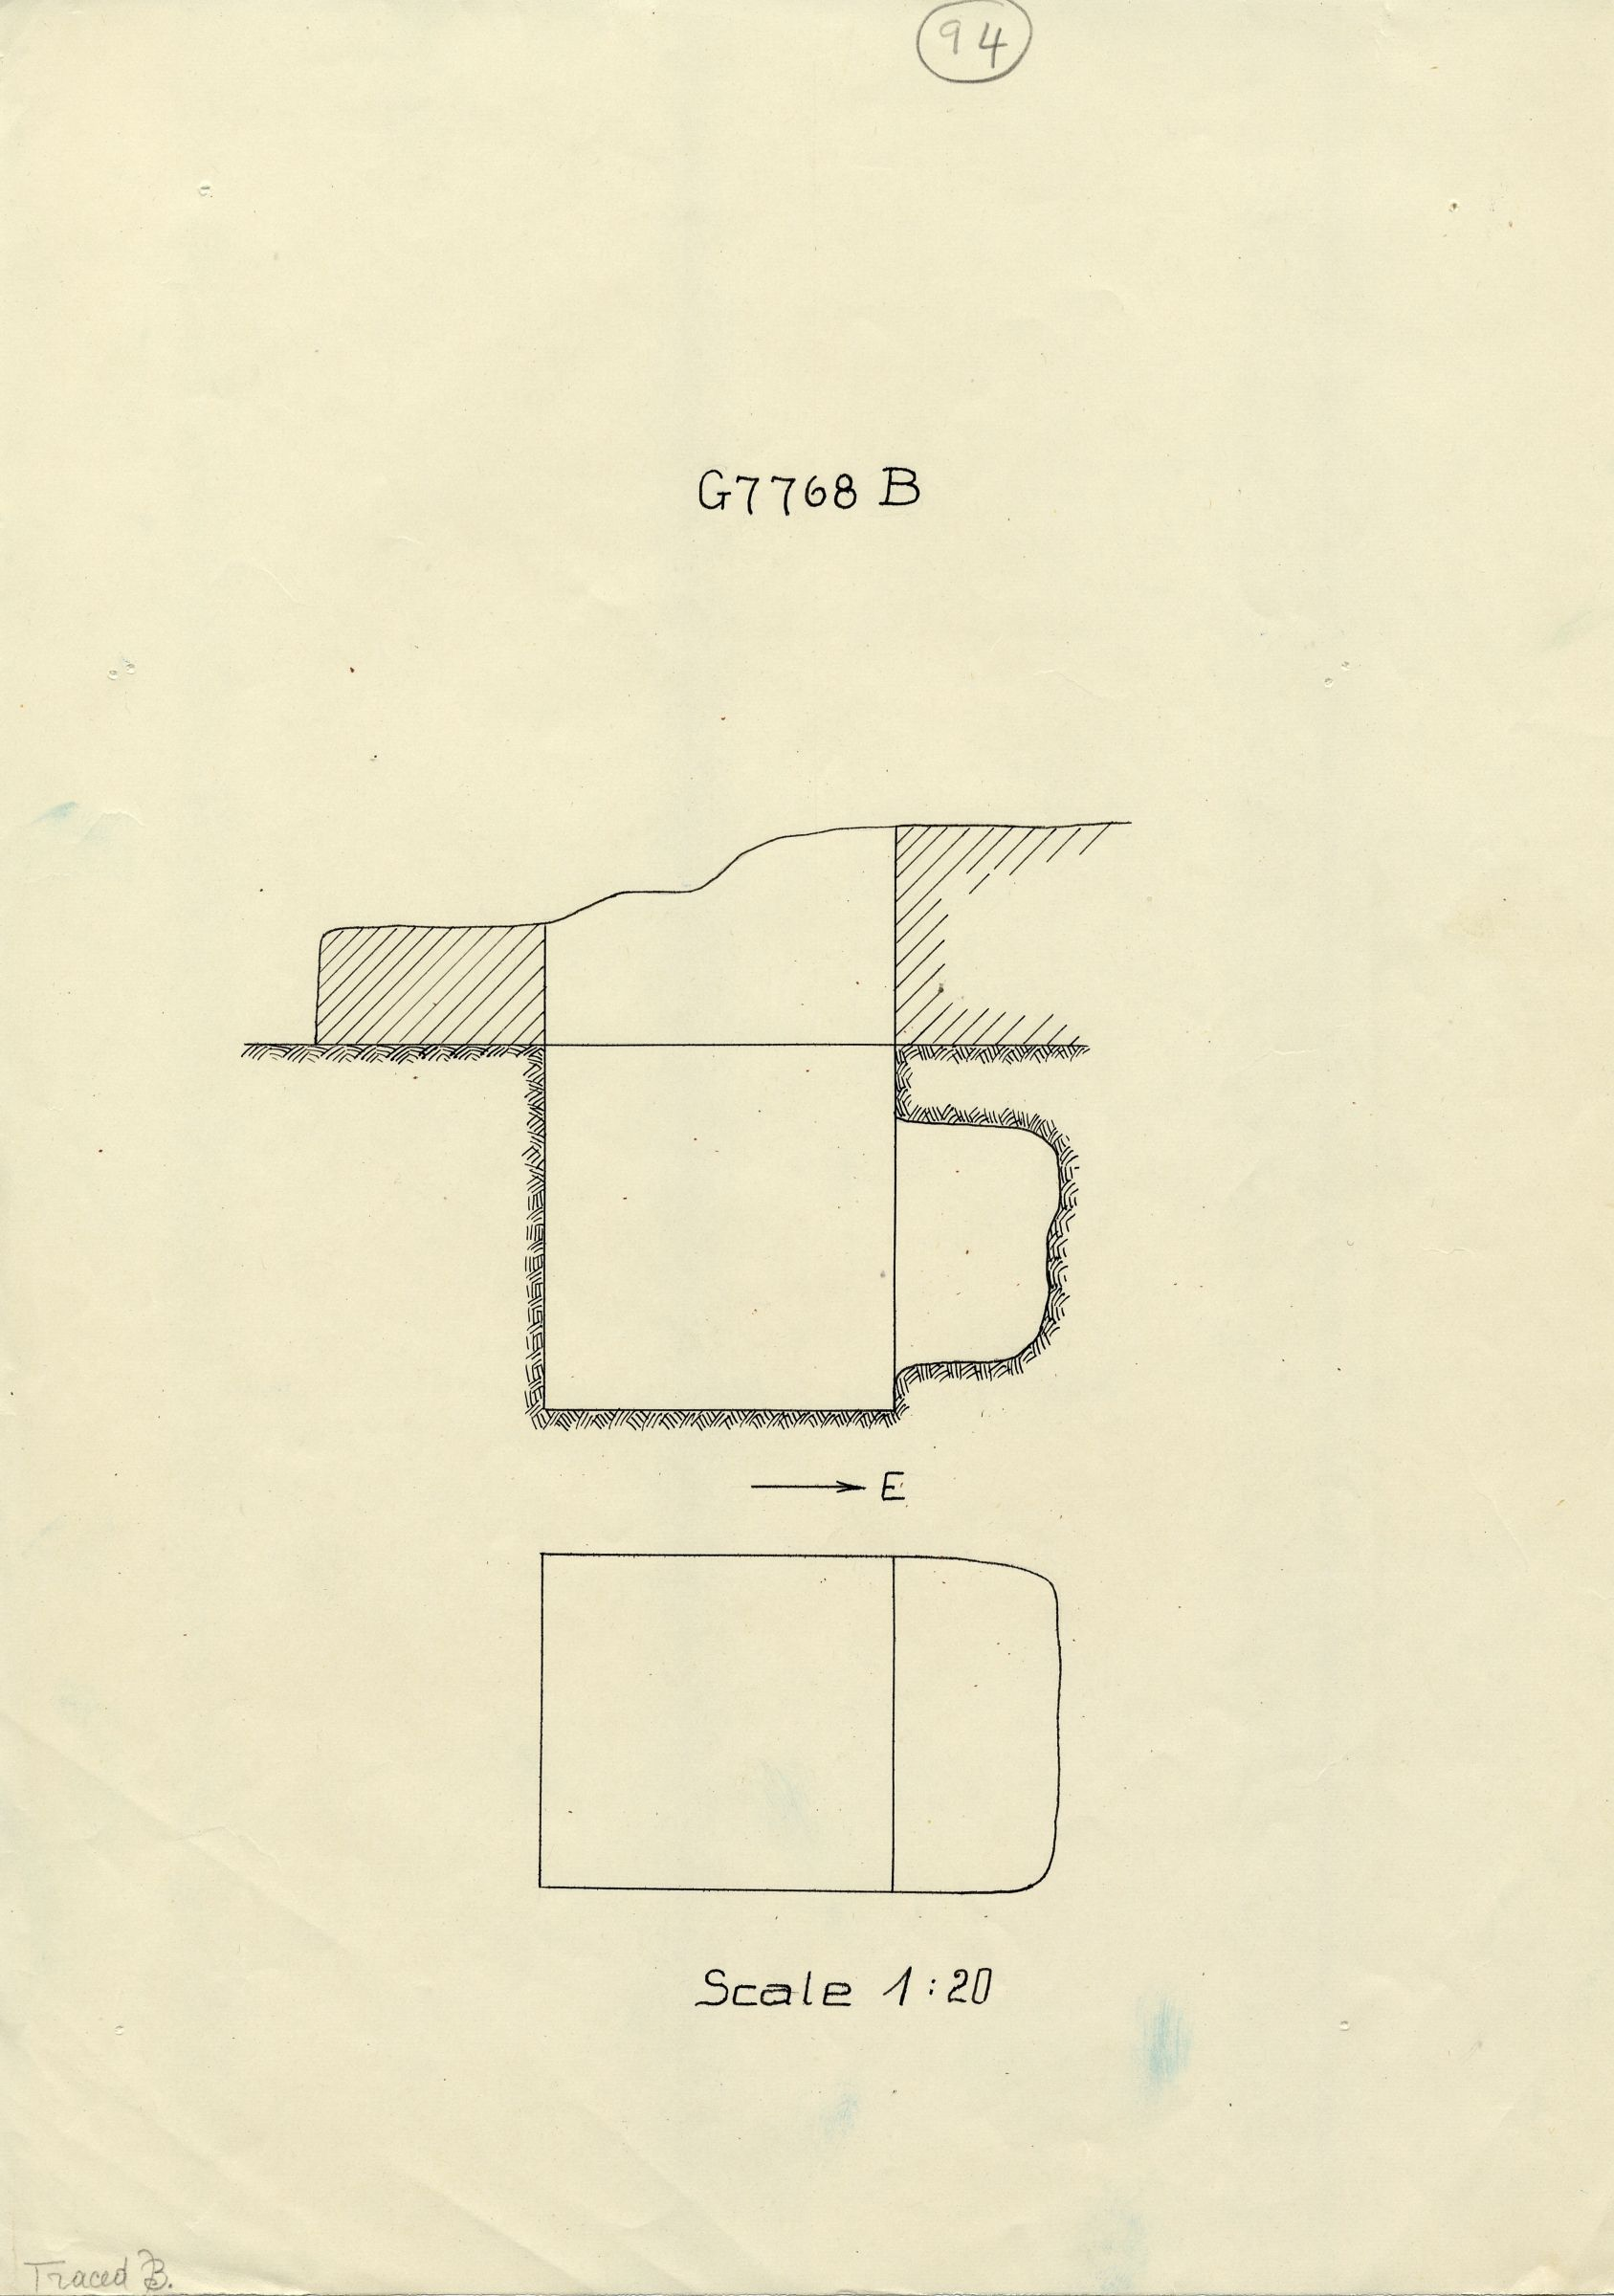 Maps and plans: G 7768, Shaft B